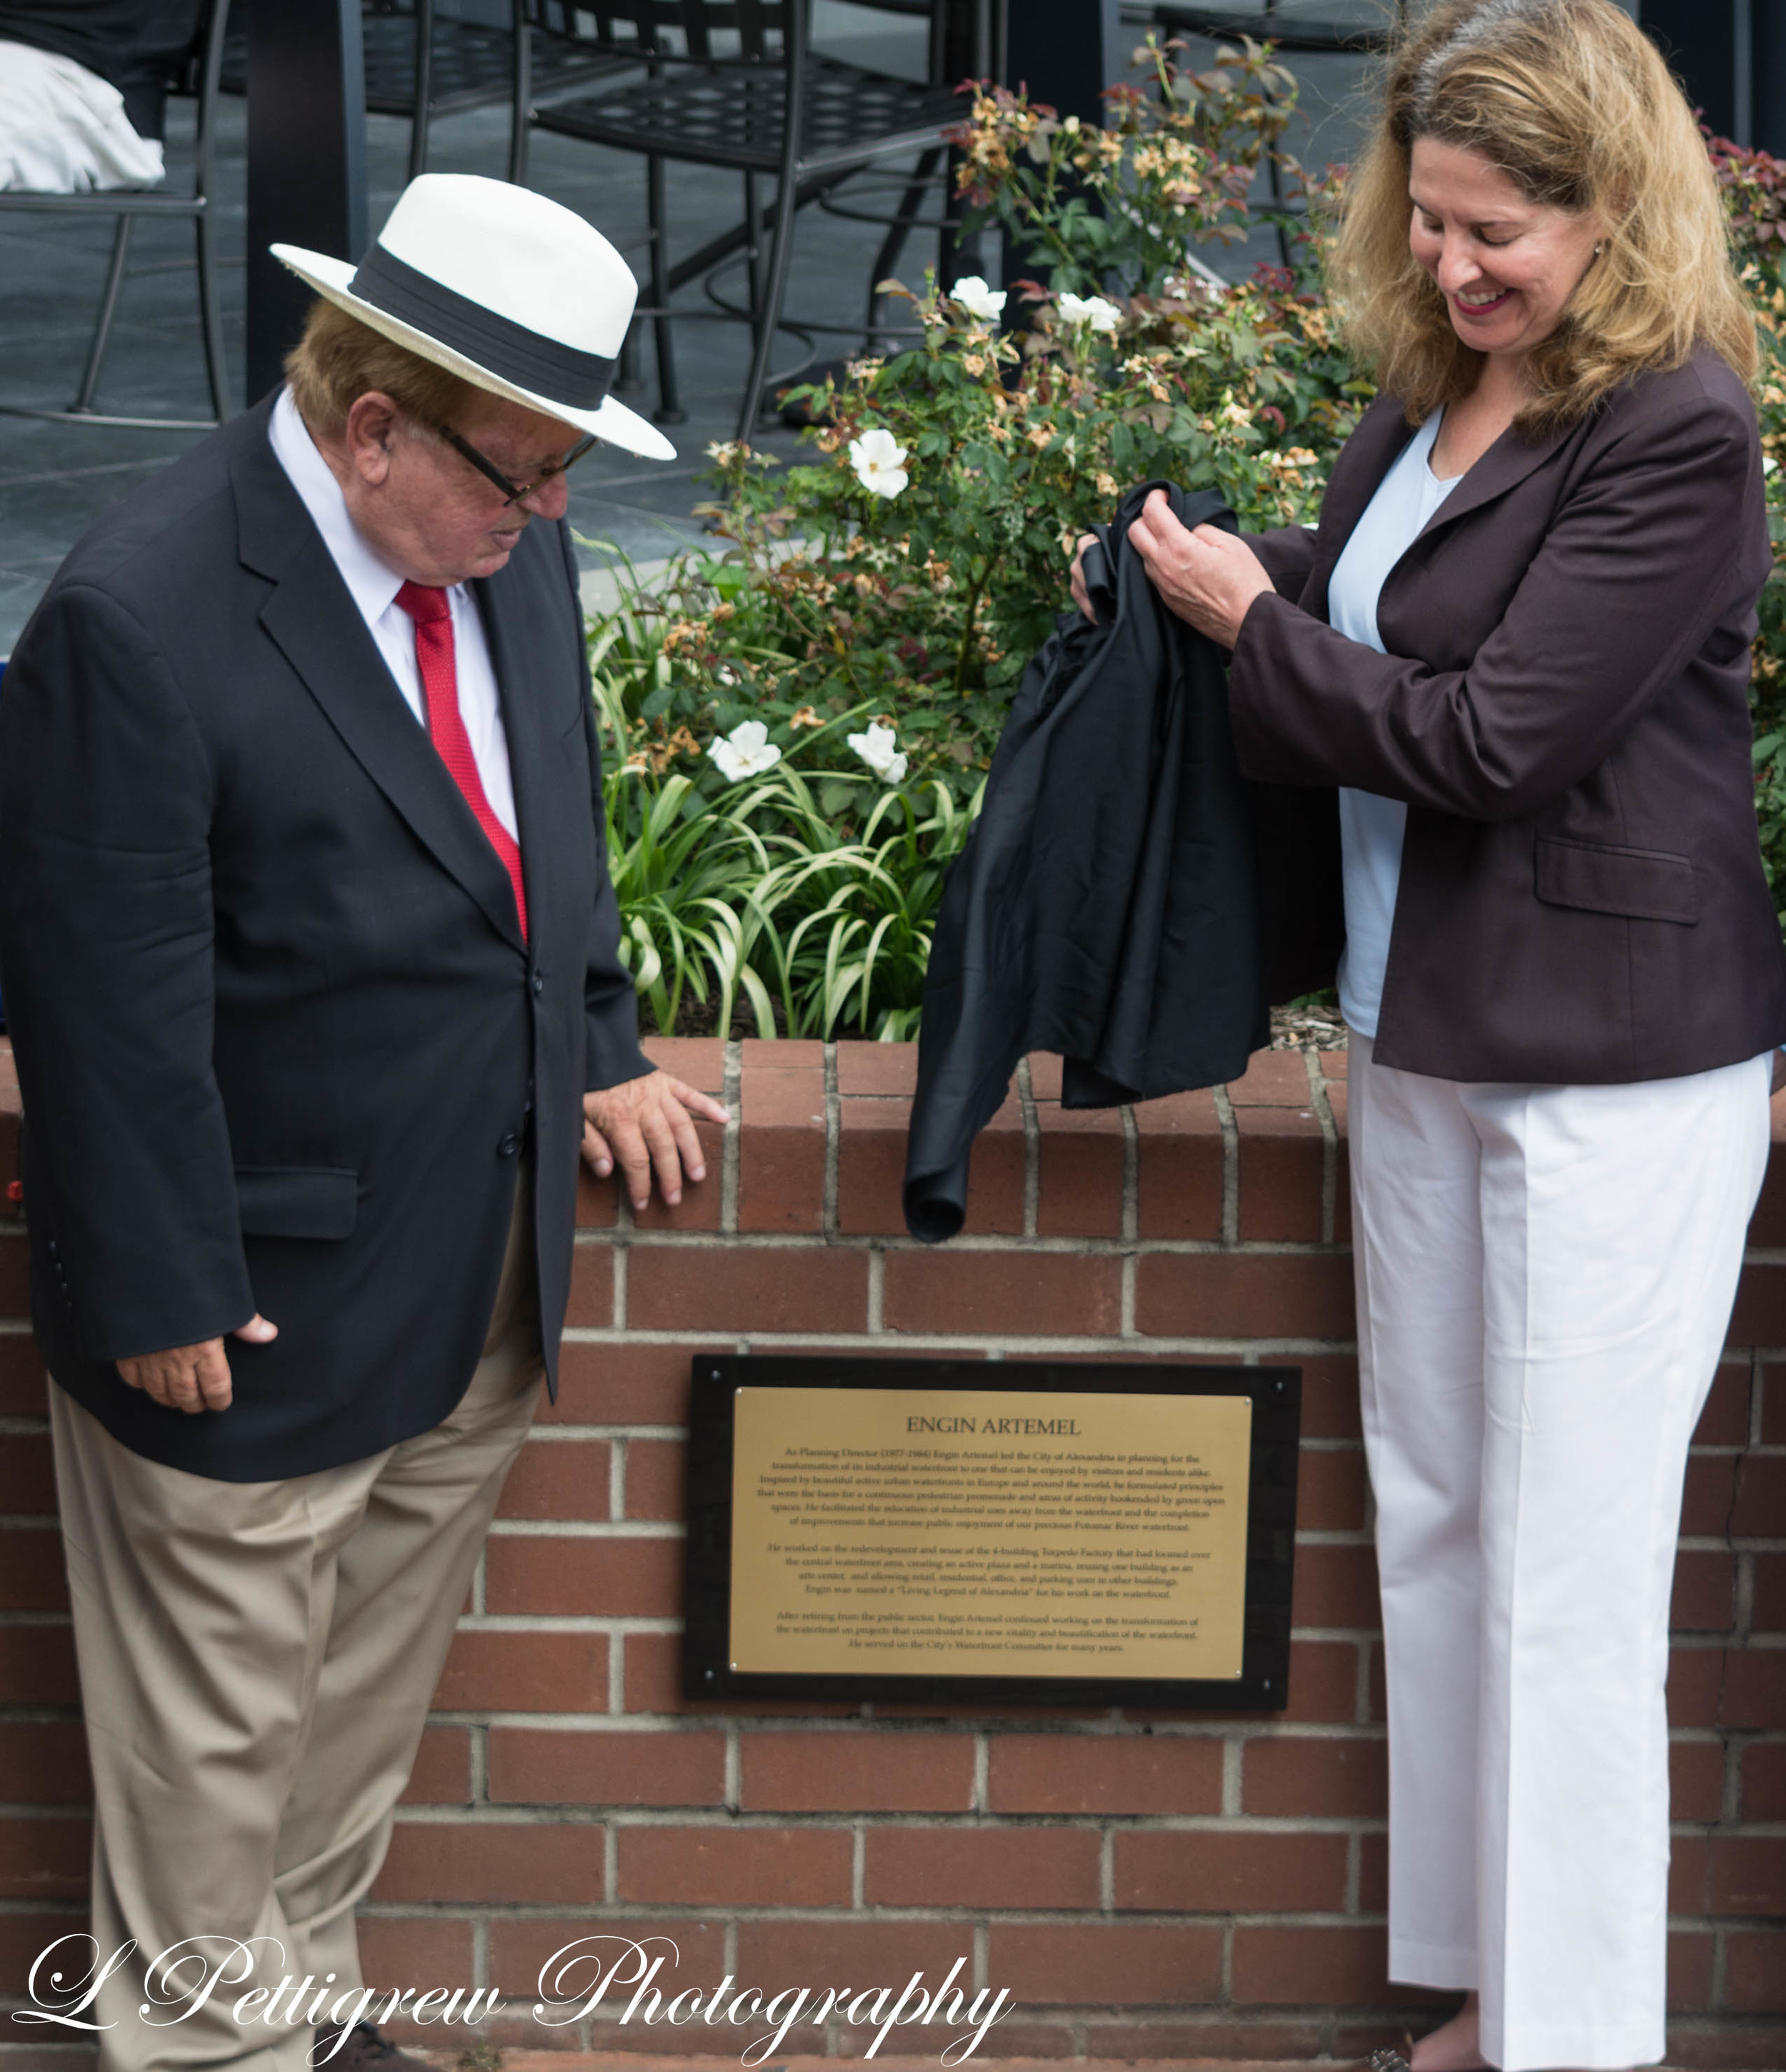 Mayor Silberberg unveiling the plaque dedicated to Engin Artemel